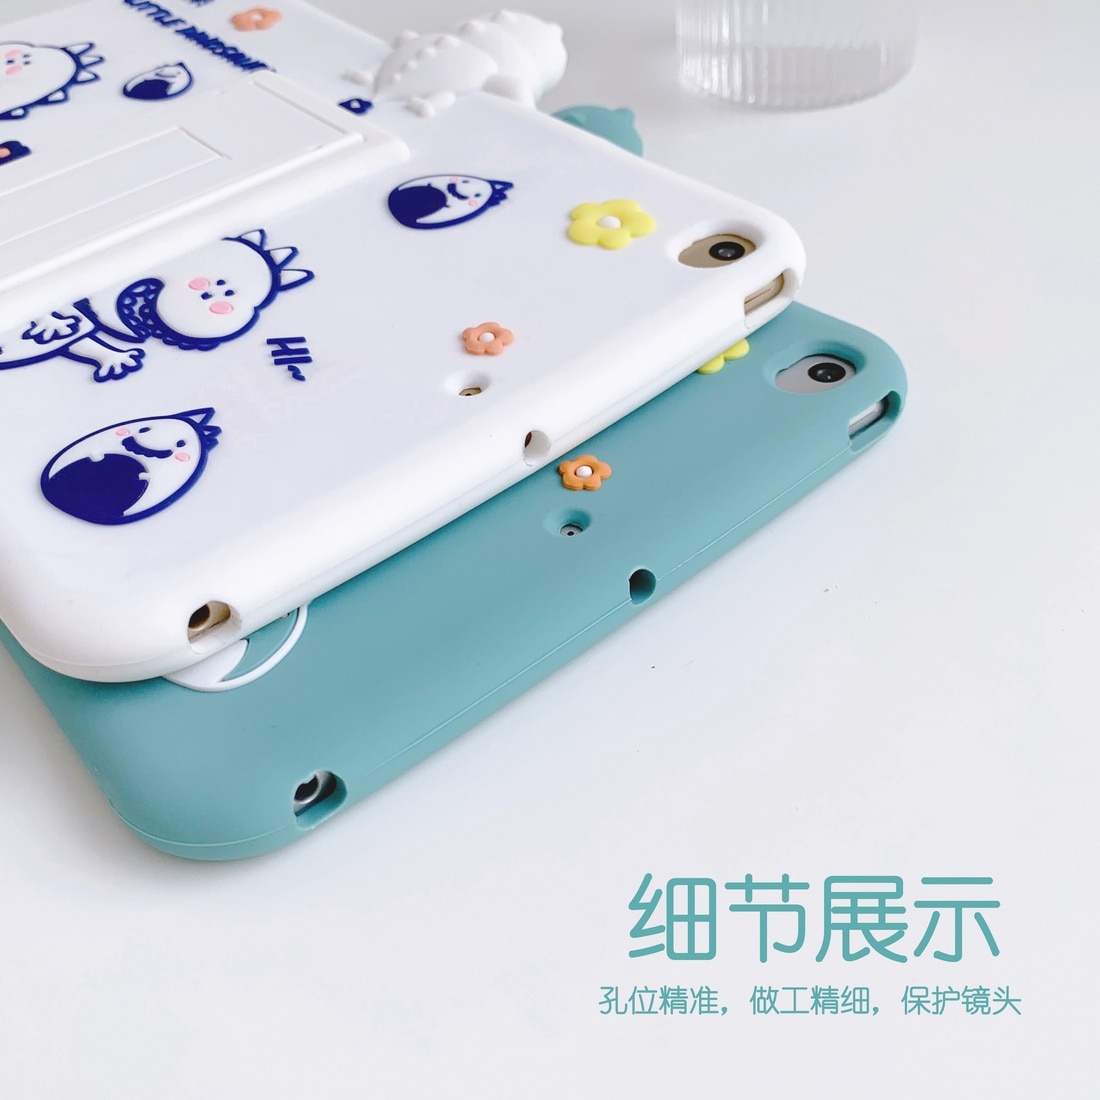 Case for iPad Mini 3 2 1 Case Silicone Soft Back Cover for iPad 9.7 Air 3 2 2019 10.2 Stereoscopic cartoon case enlarge